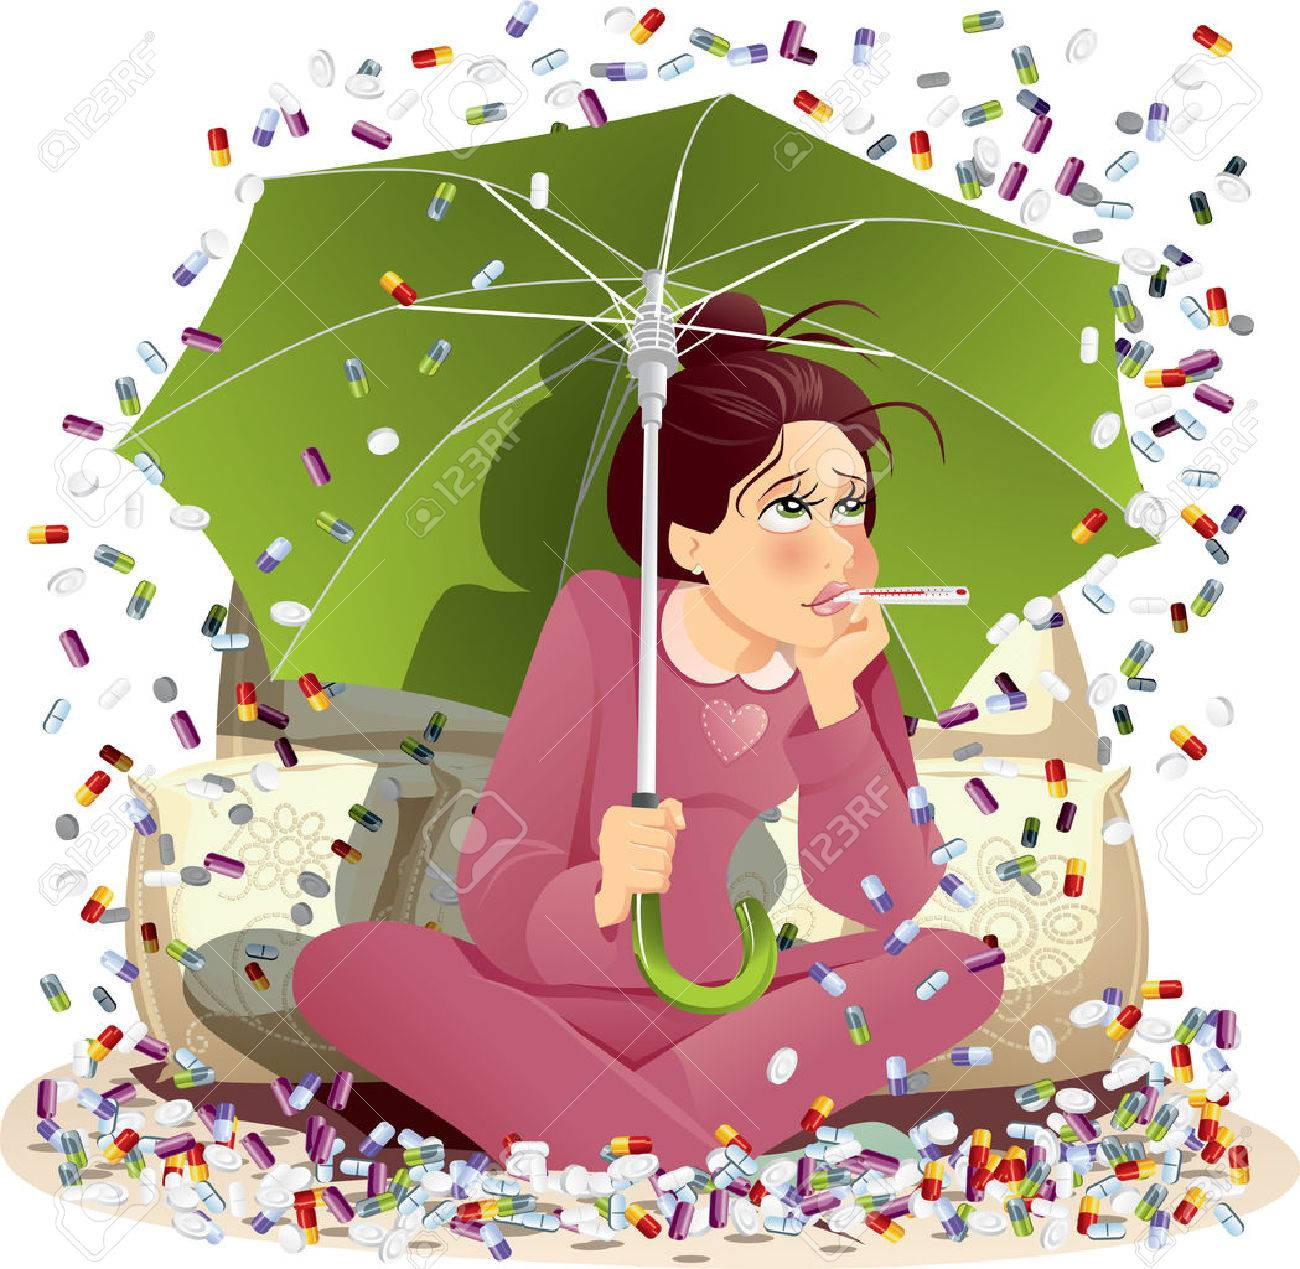 Sick Girl Bombarded with Medication - Vector Illustration - 23097618